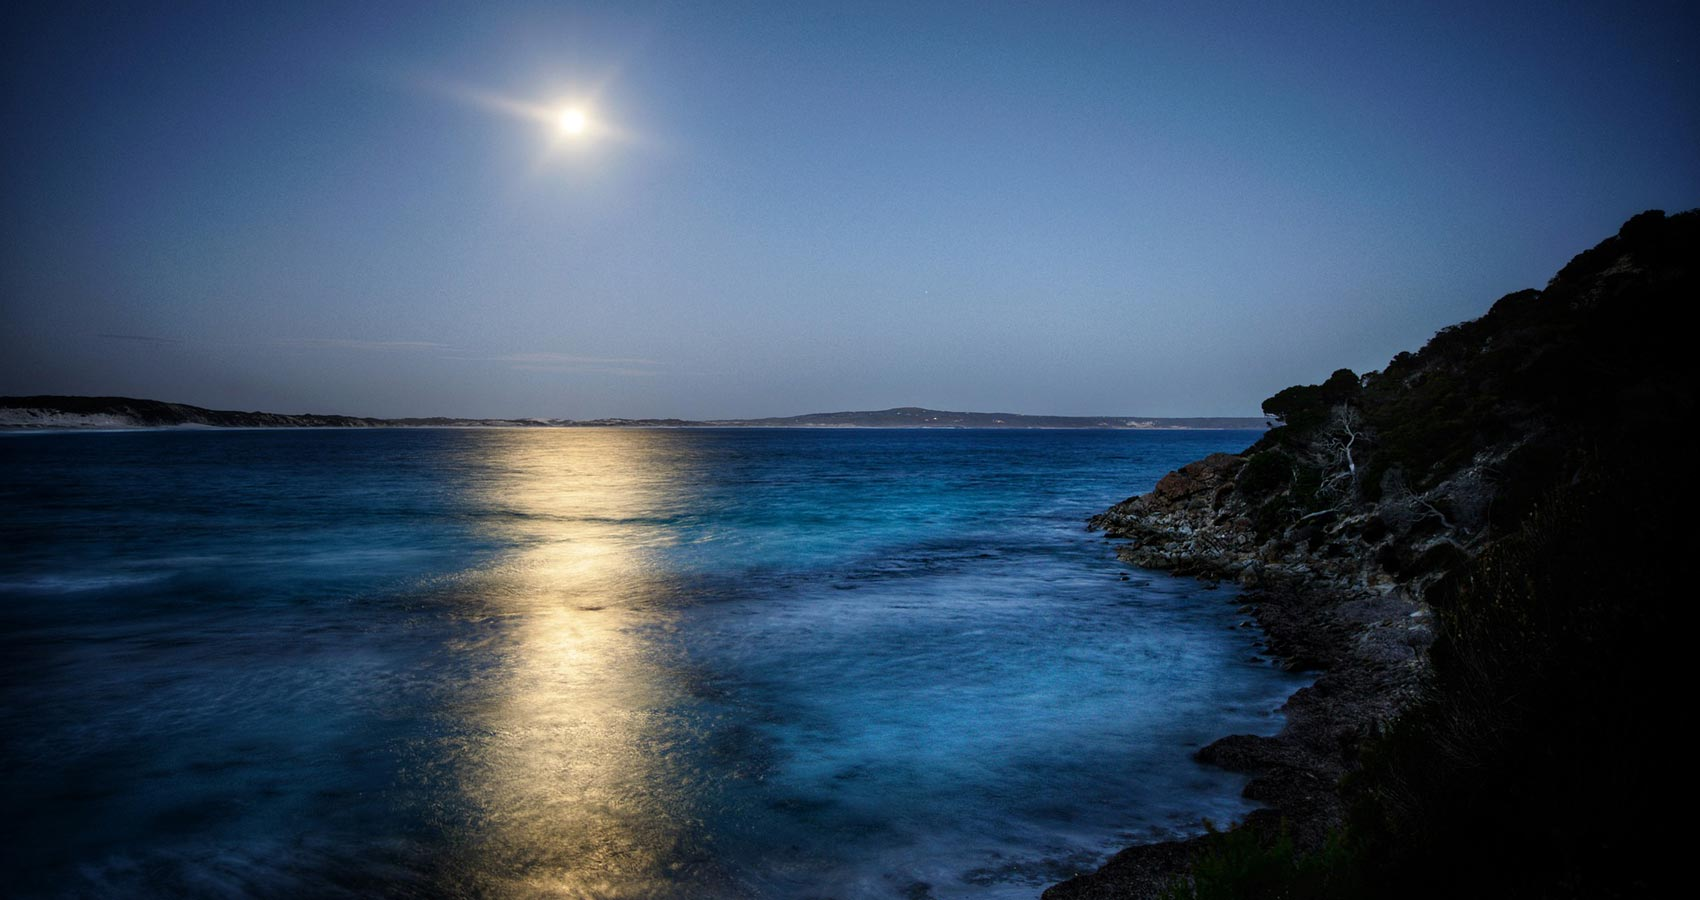 I Am The Moon, a poetry by Michael Murdoch at Spillwords.com